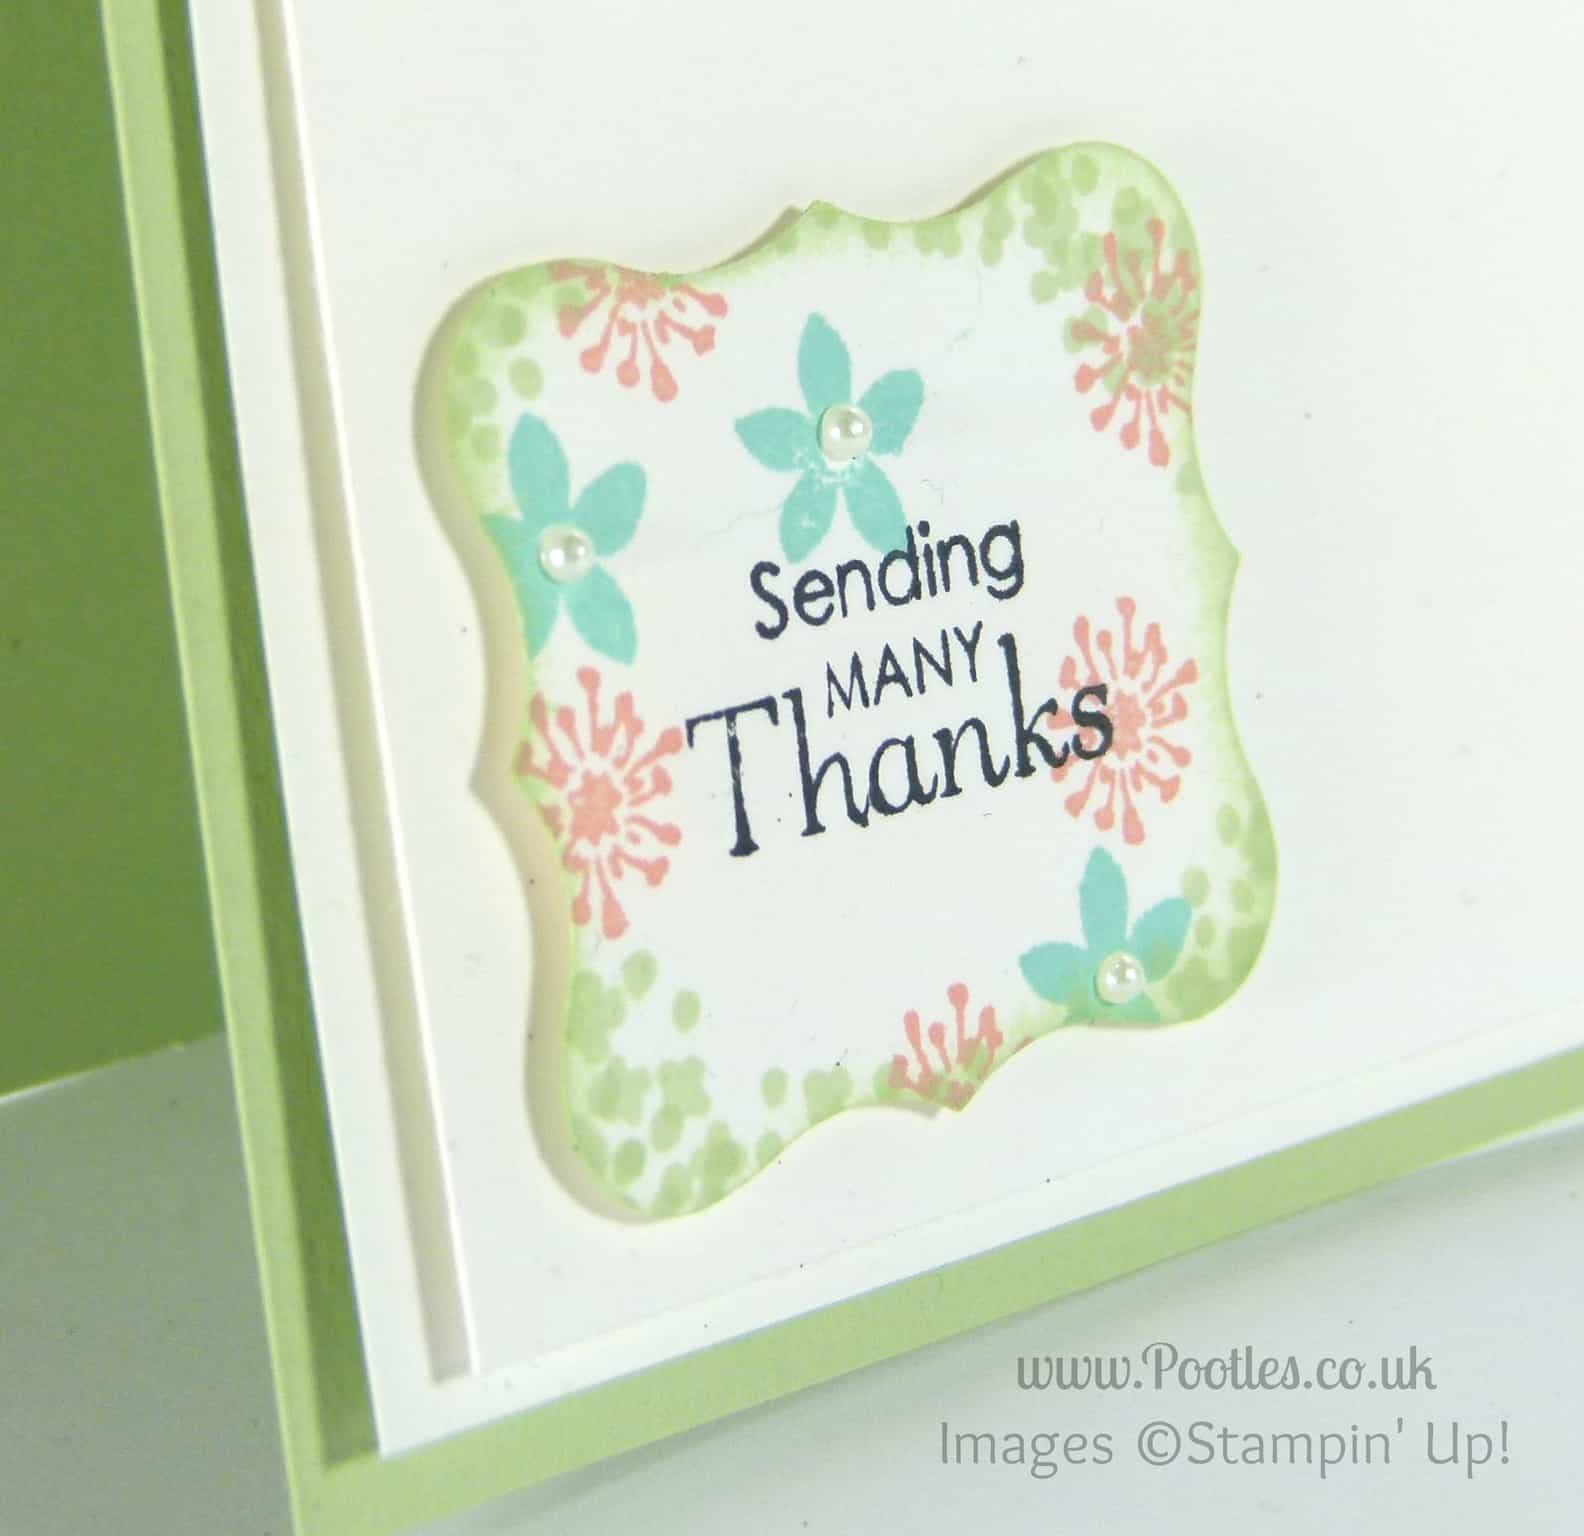 Stampin' Up! Demonstrator - Pootles. Background Stamped Punch Outs using ©Stampin' Up! Summer Sillhouettes Close Up